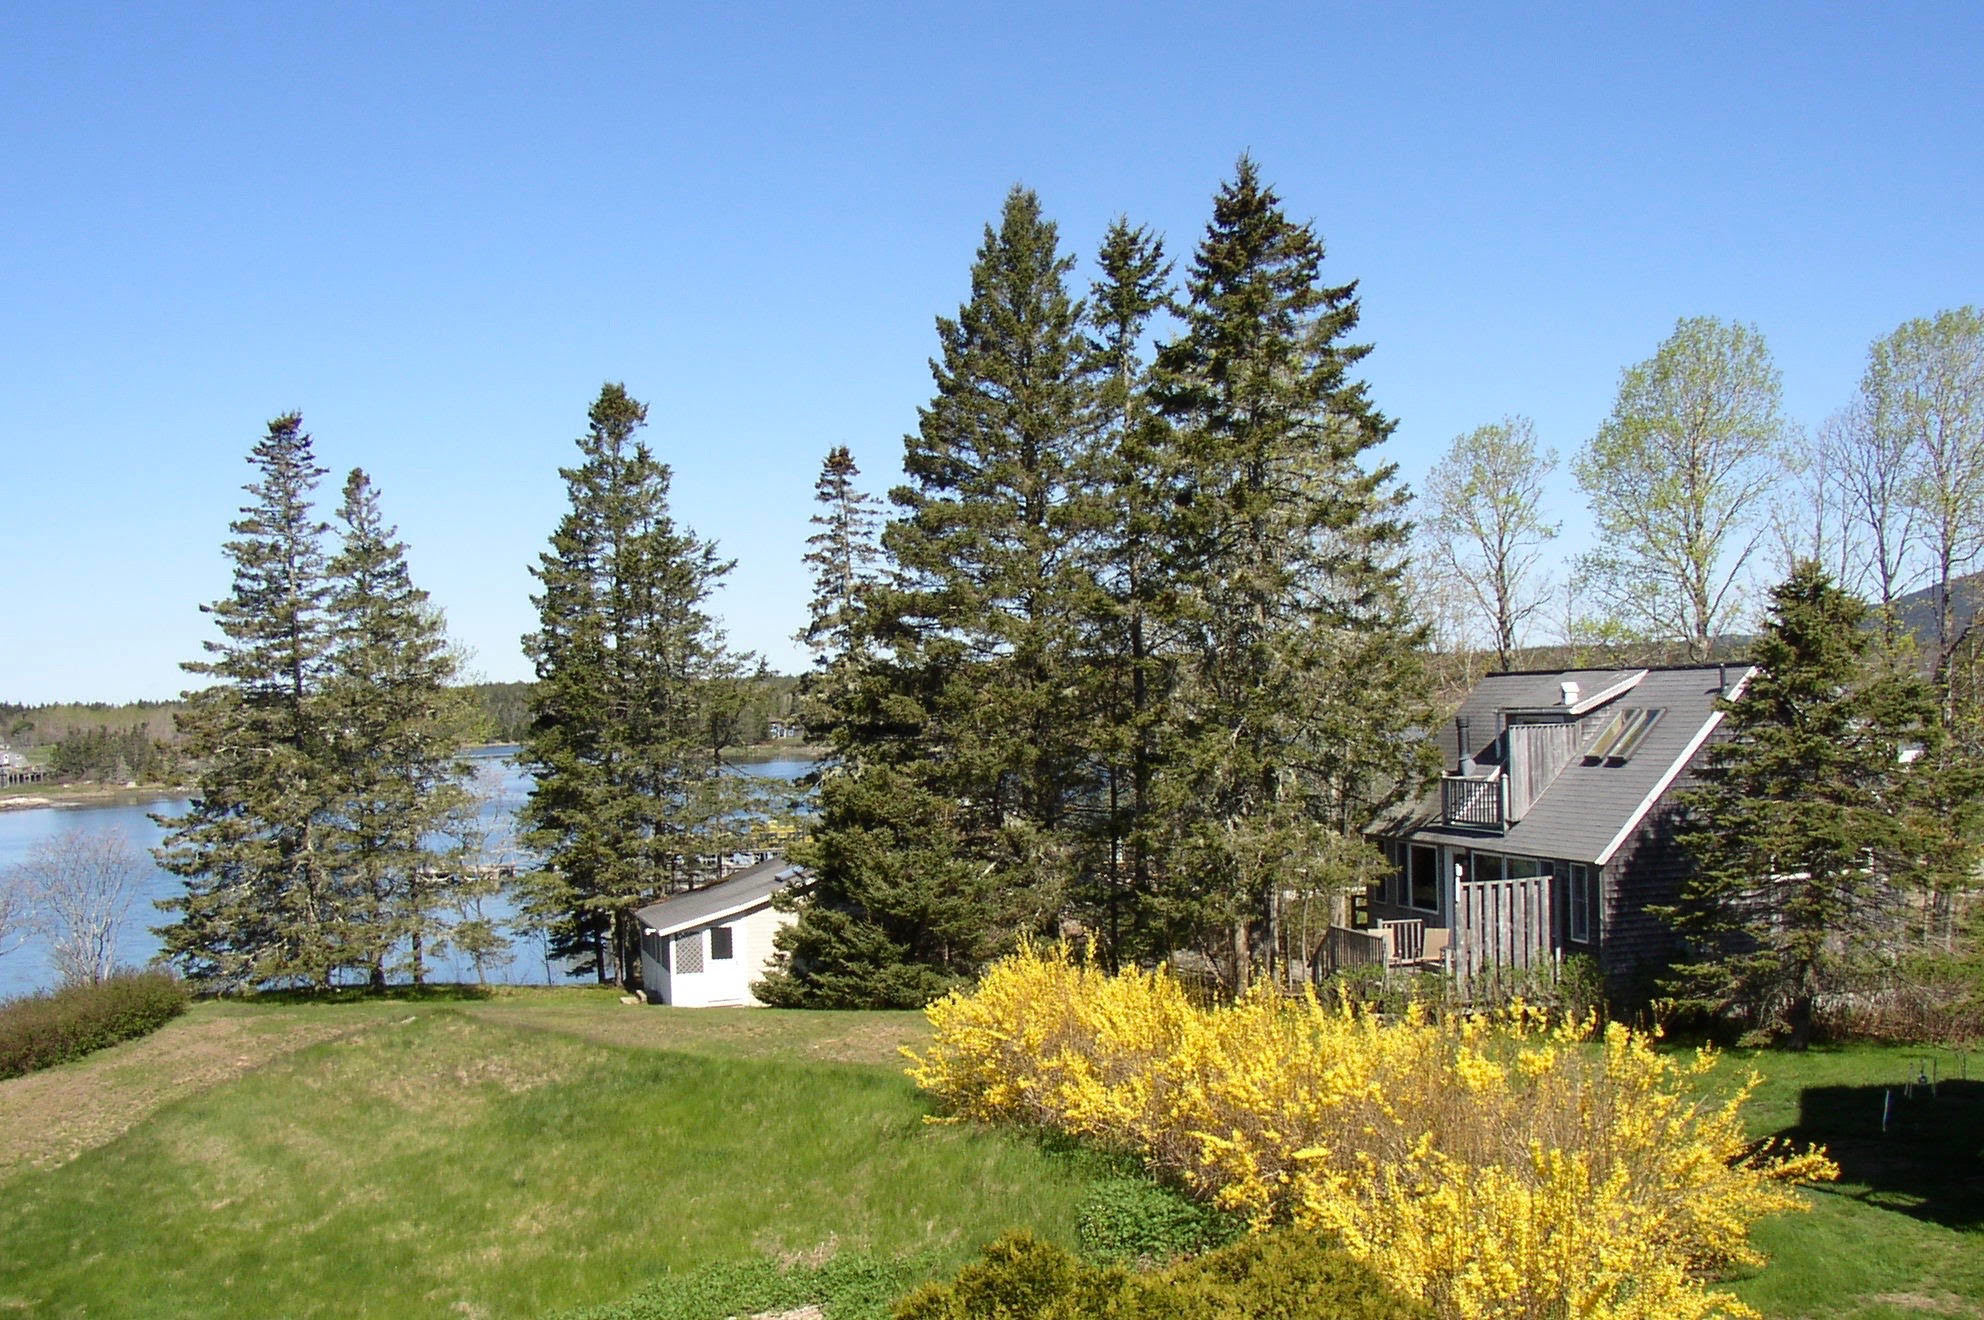 Bass Harbor Cottages and Country Inn, on the water, trees, foliage